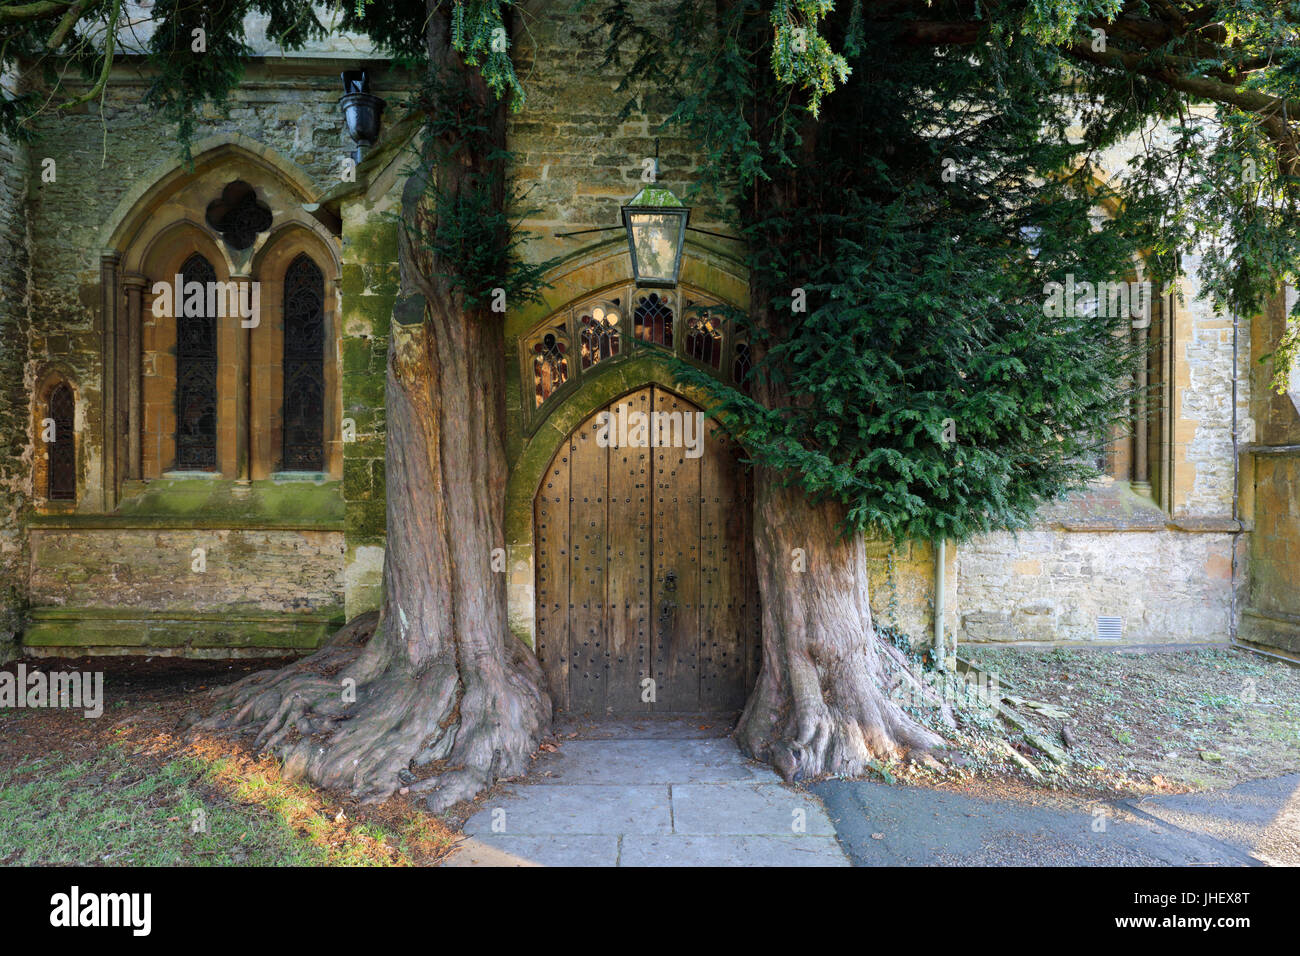 Yew trees and door of St Edward's church, Stow-on-the-Wold, Cotswolds, Gloucestershire, England, United Kingdom, Stock Photo